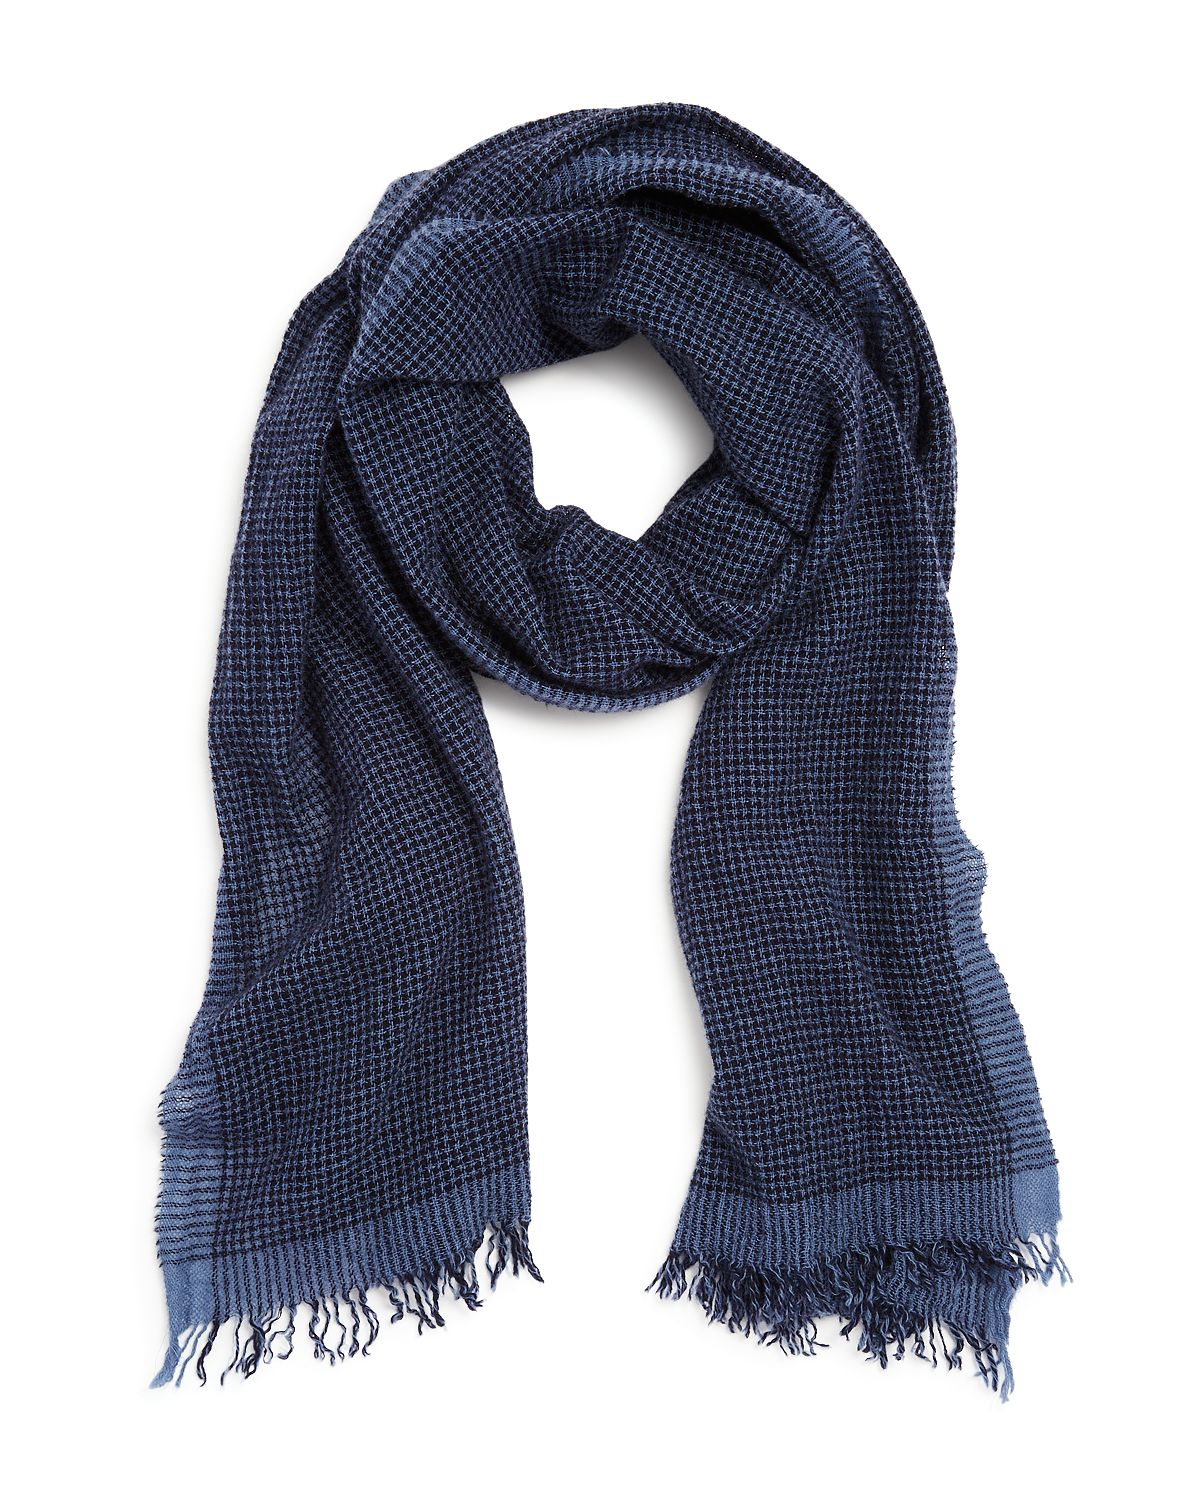 The Men's Store Mini-houndstooth Scarf Navy Blue